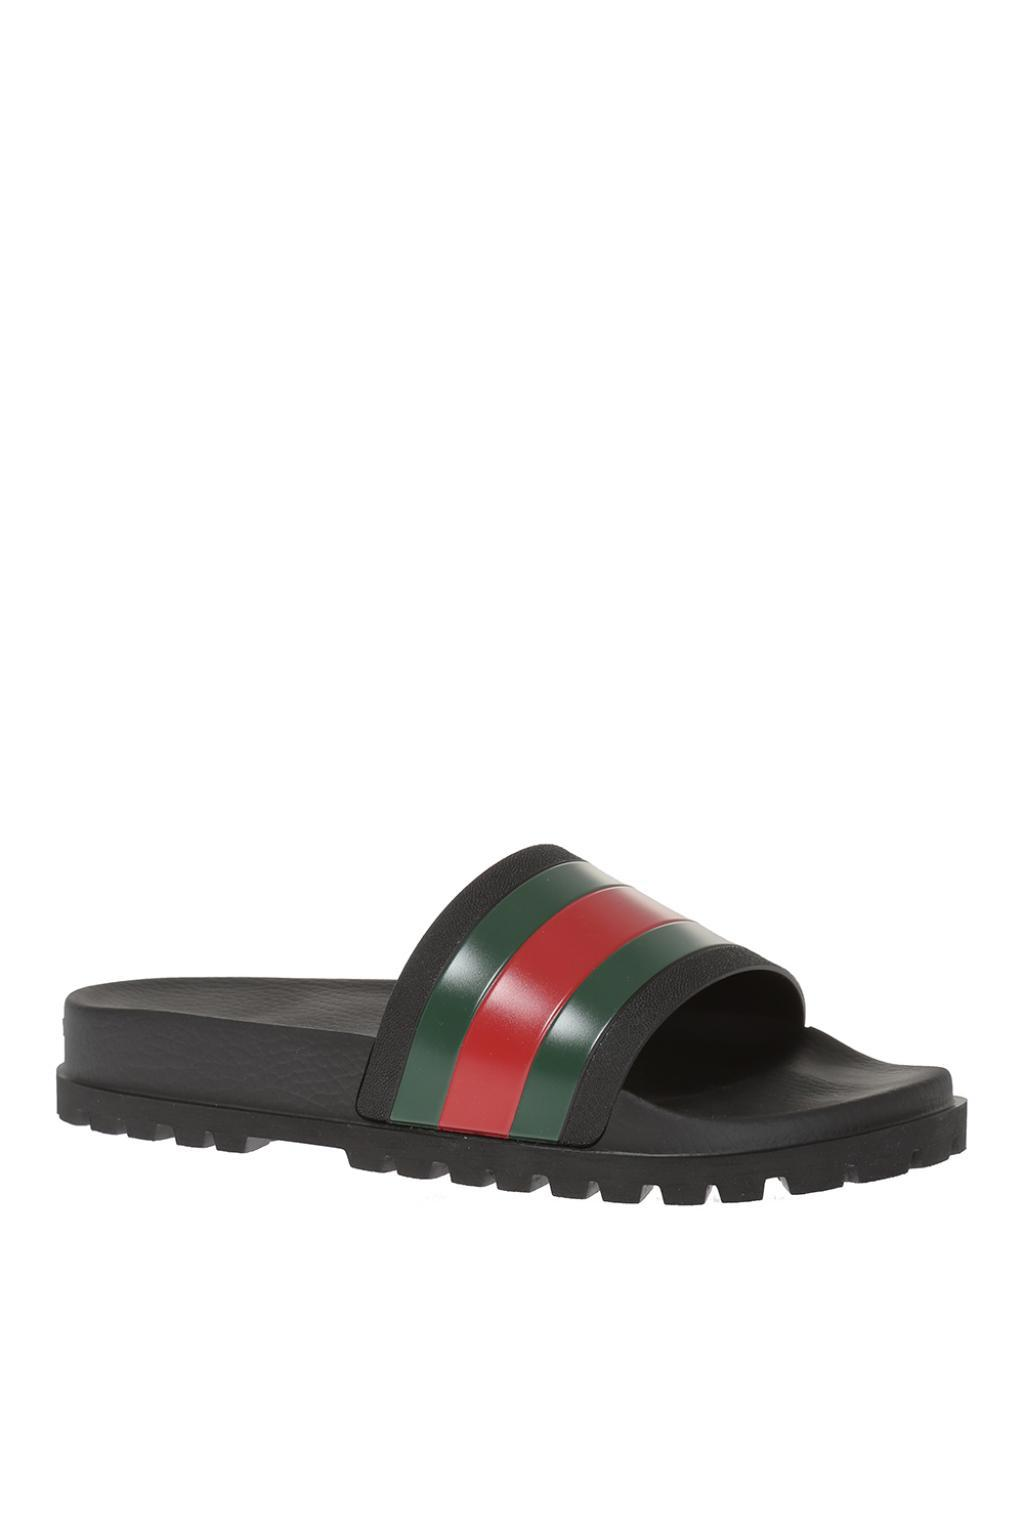 a217f5ba8b383 Lyst - Gucci Striped Web Rubber Slides in Black for Men - Save 30%